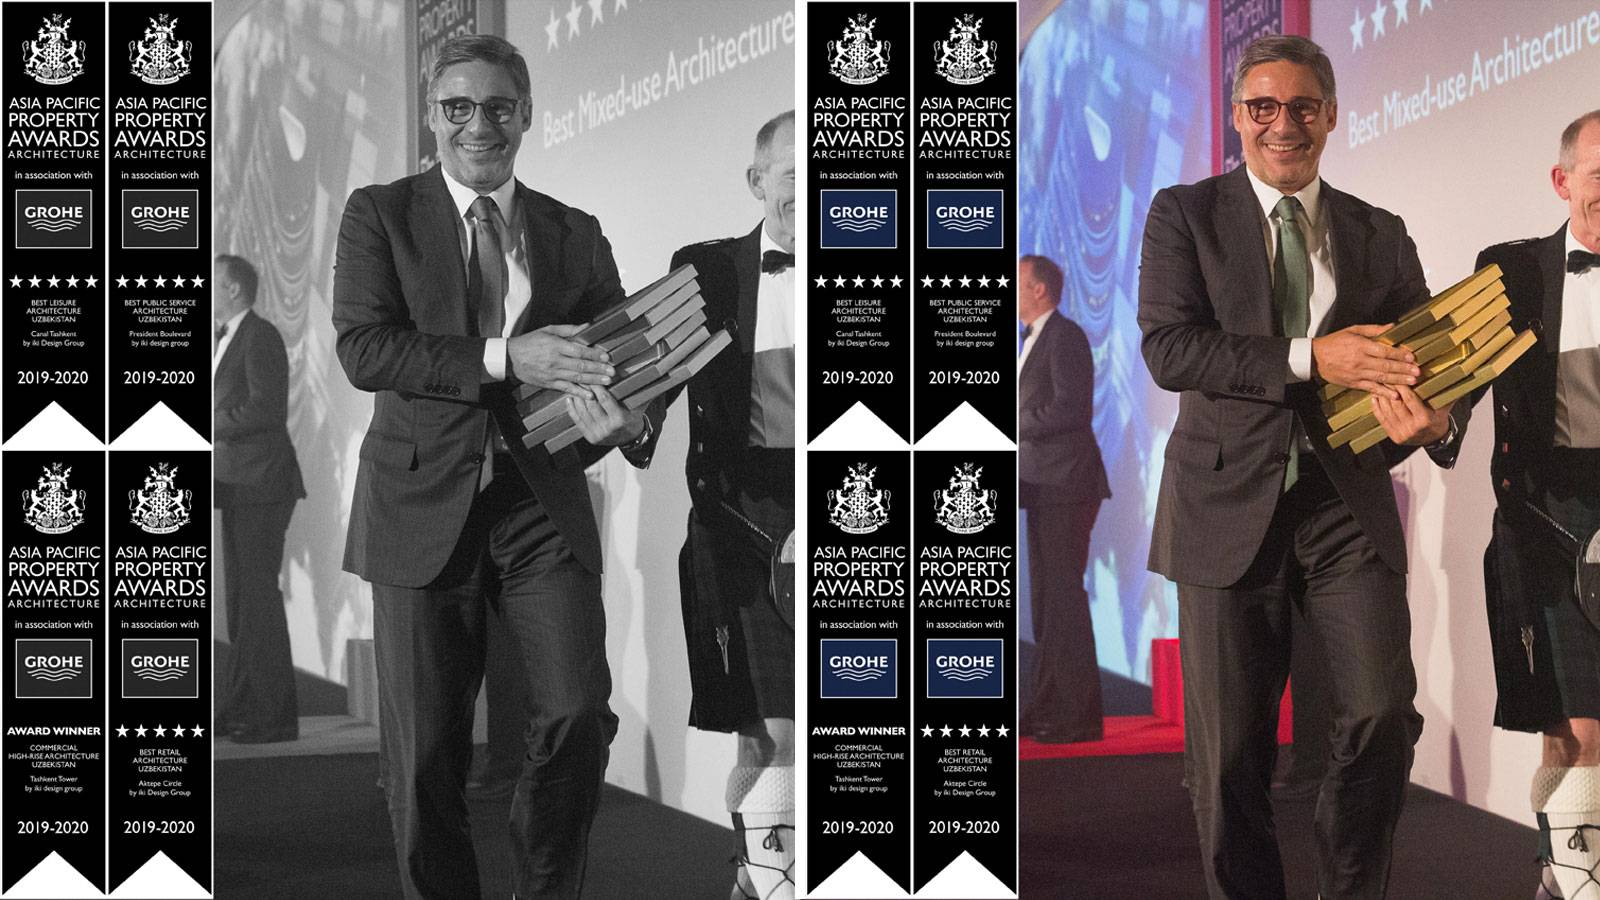 15.05.2019 - iki design group had been awarded by Asia Pacific Property Awards for their 4 projects